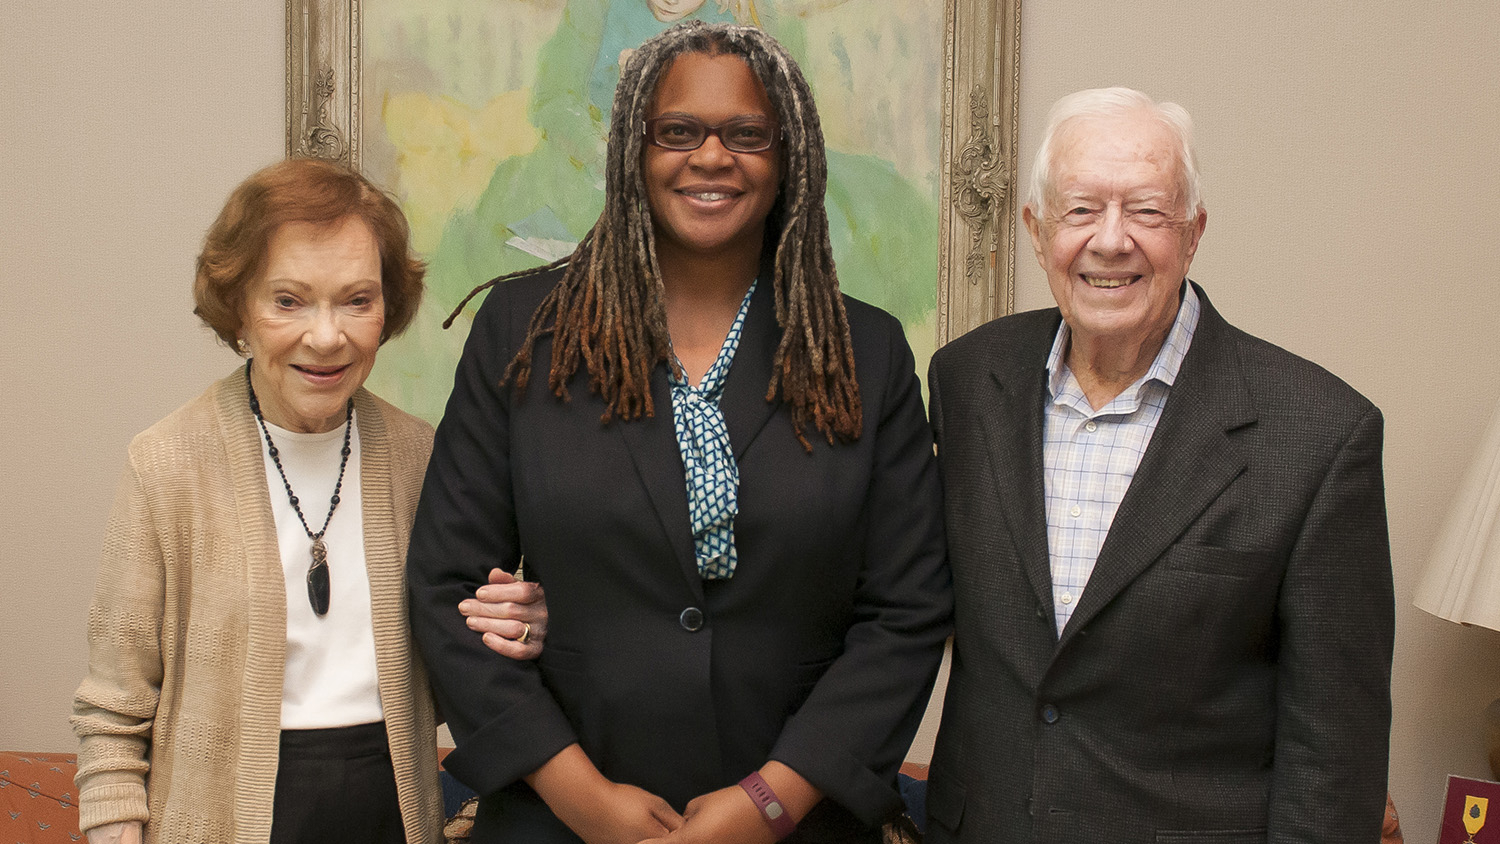 Meredith Evans standing with Jimmy Carter and wife, Rosalynn